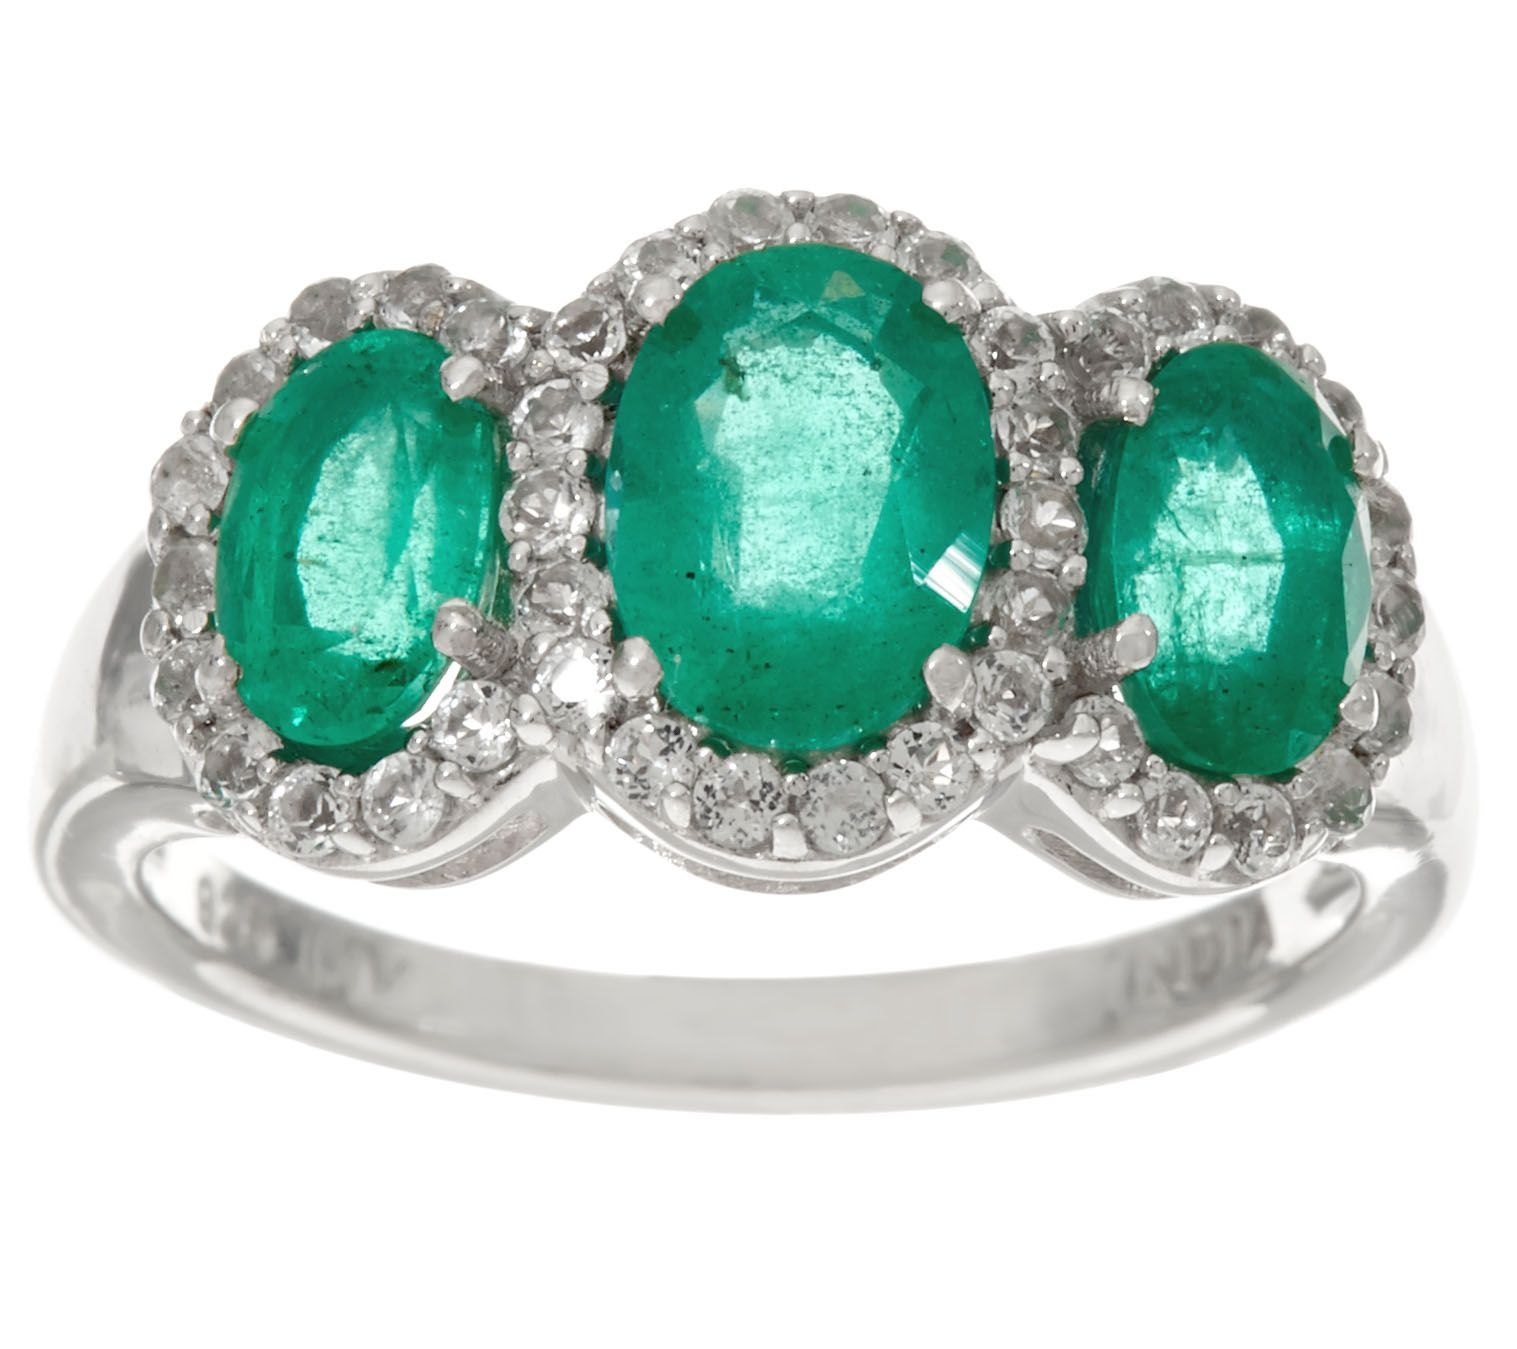 com ring l gemstone created dp white sapphire green collection jewelry silver emerald amazon and sterling rings curated